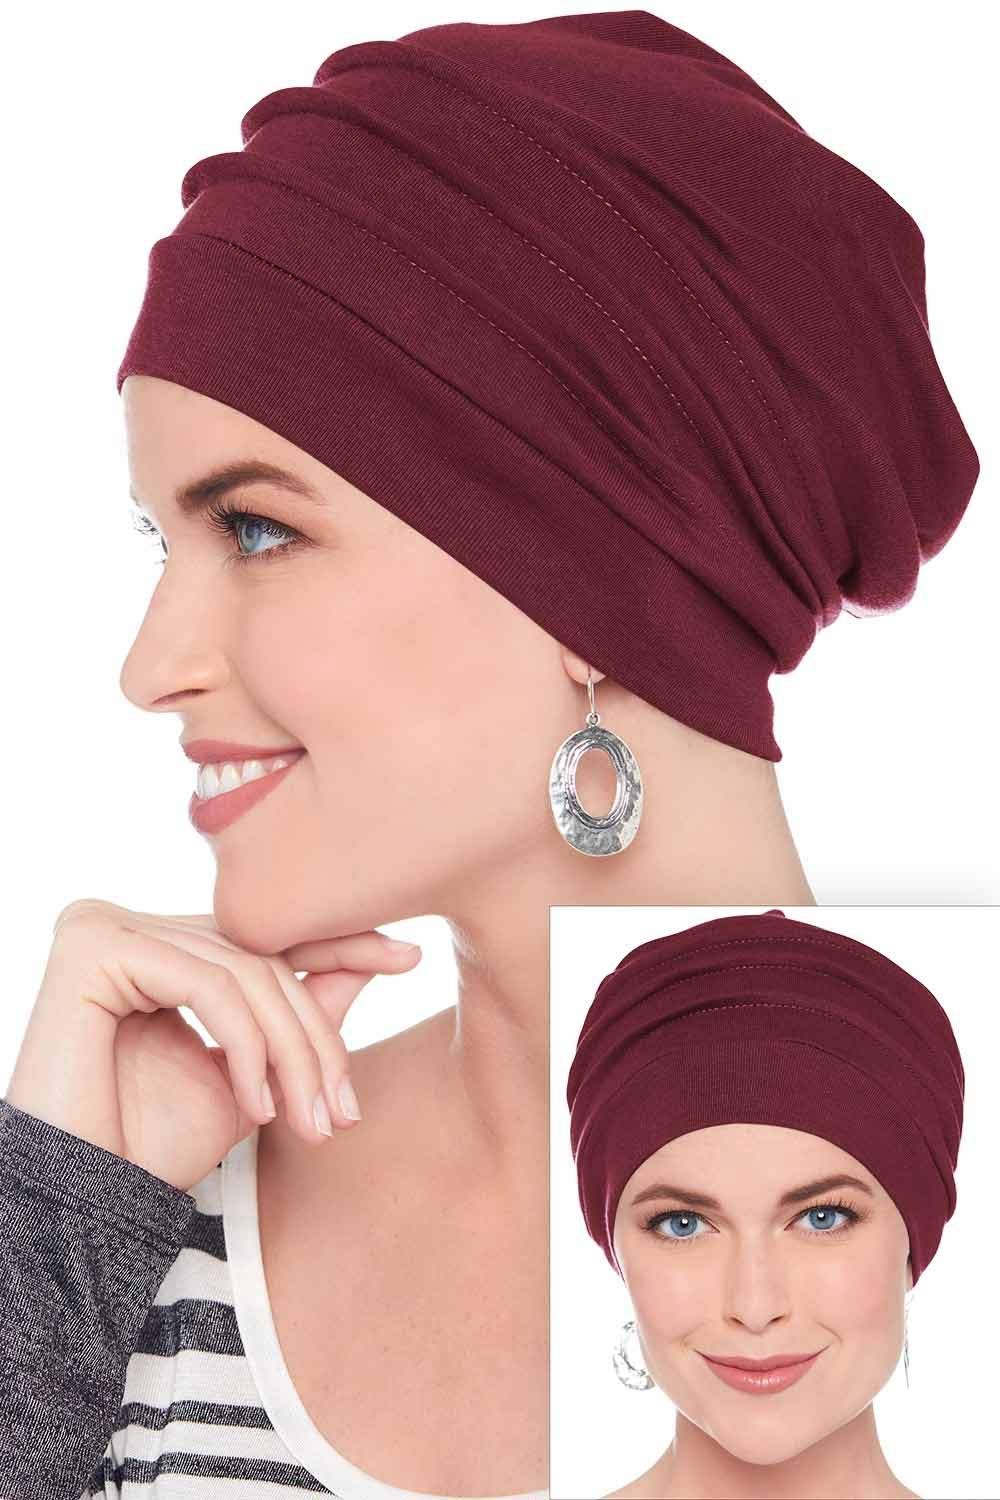 Slouchy Snood-Caps for Women with Chemo Cancer Hair Loss Navy Headcovers Unlimited TU-13478-NVY